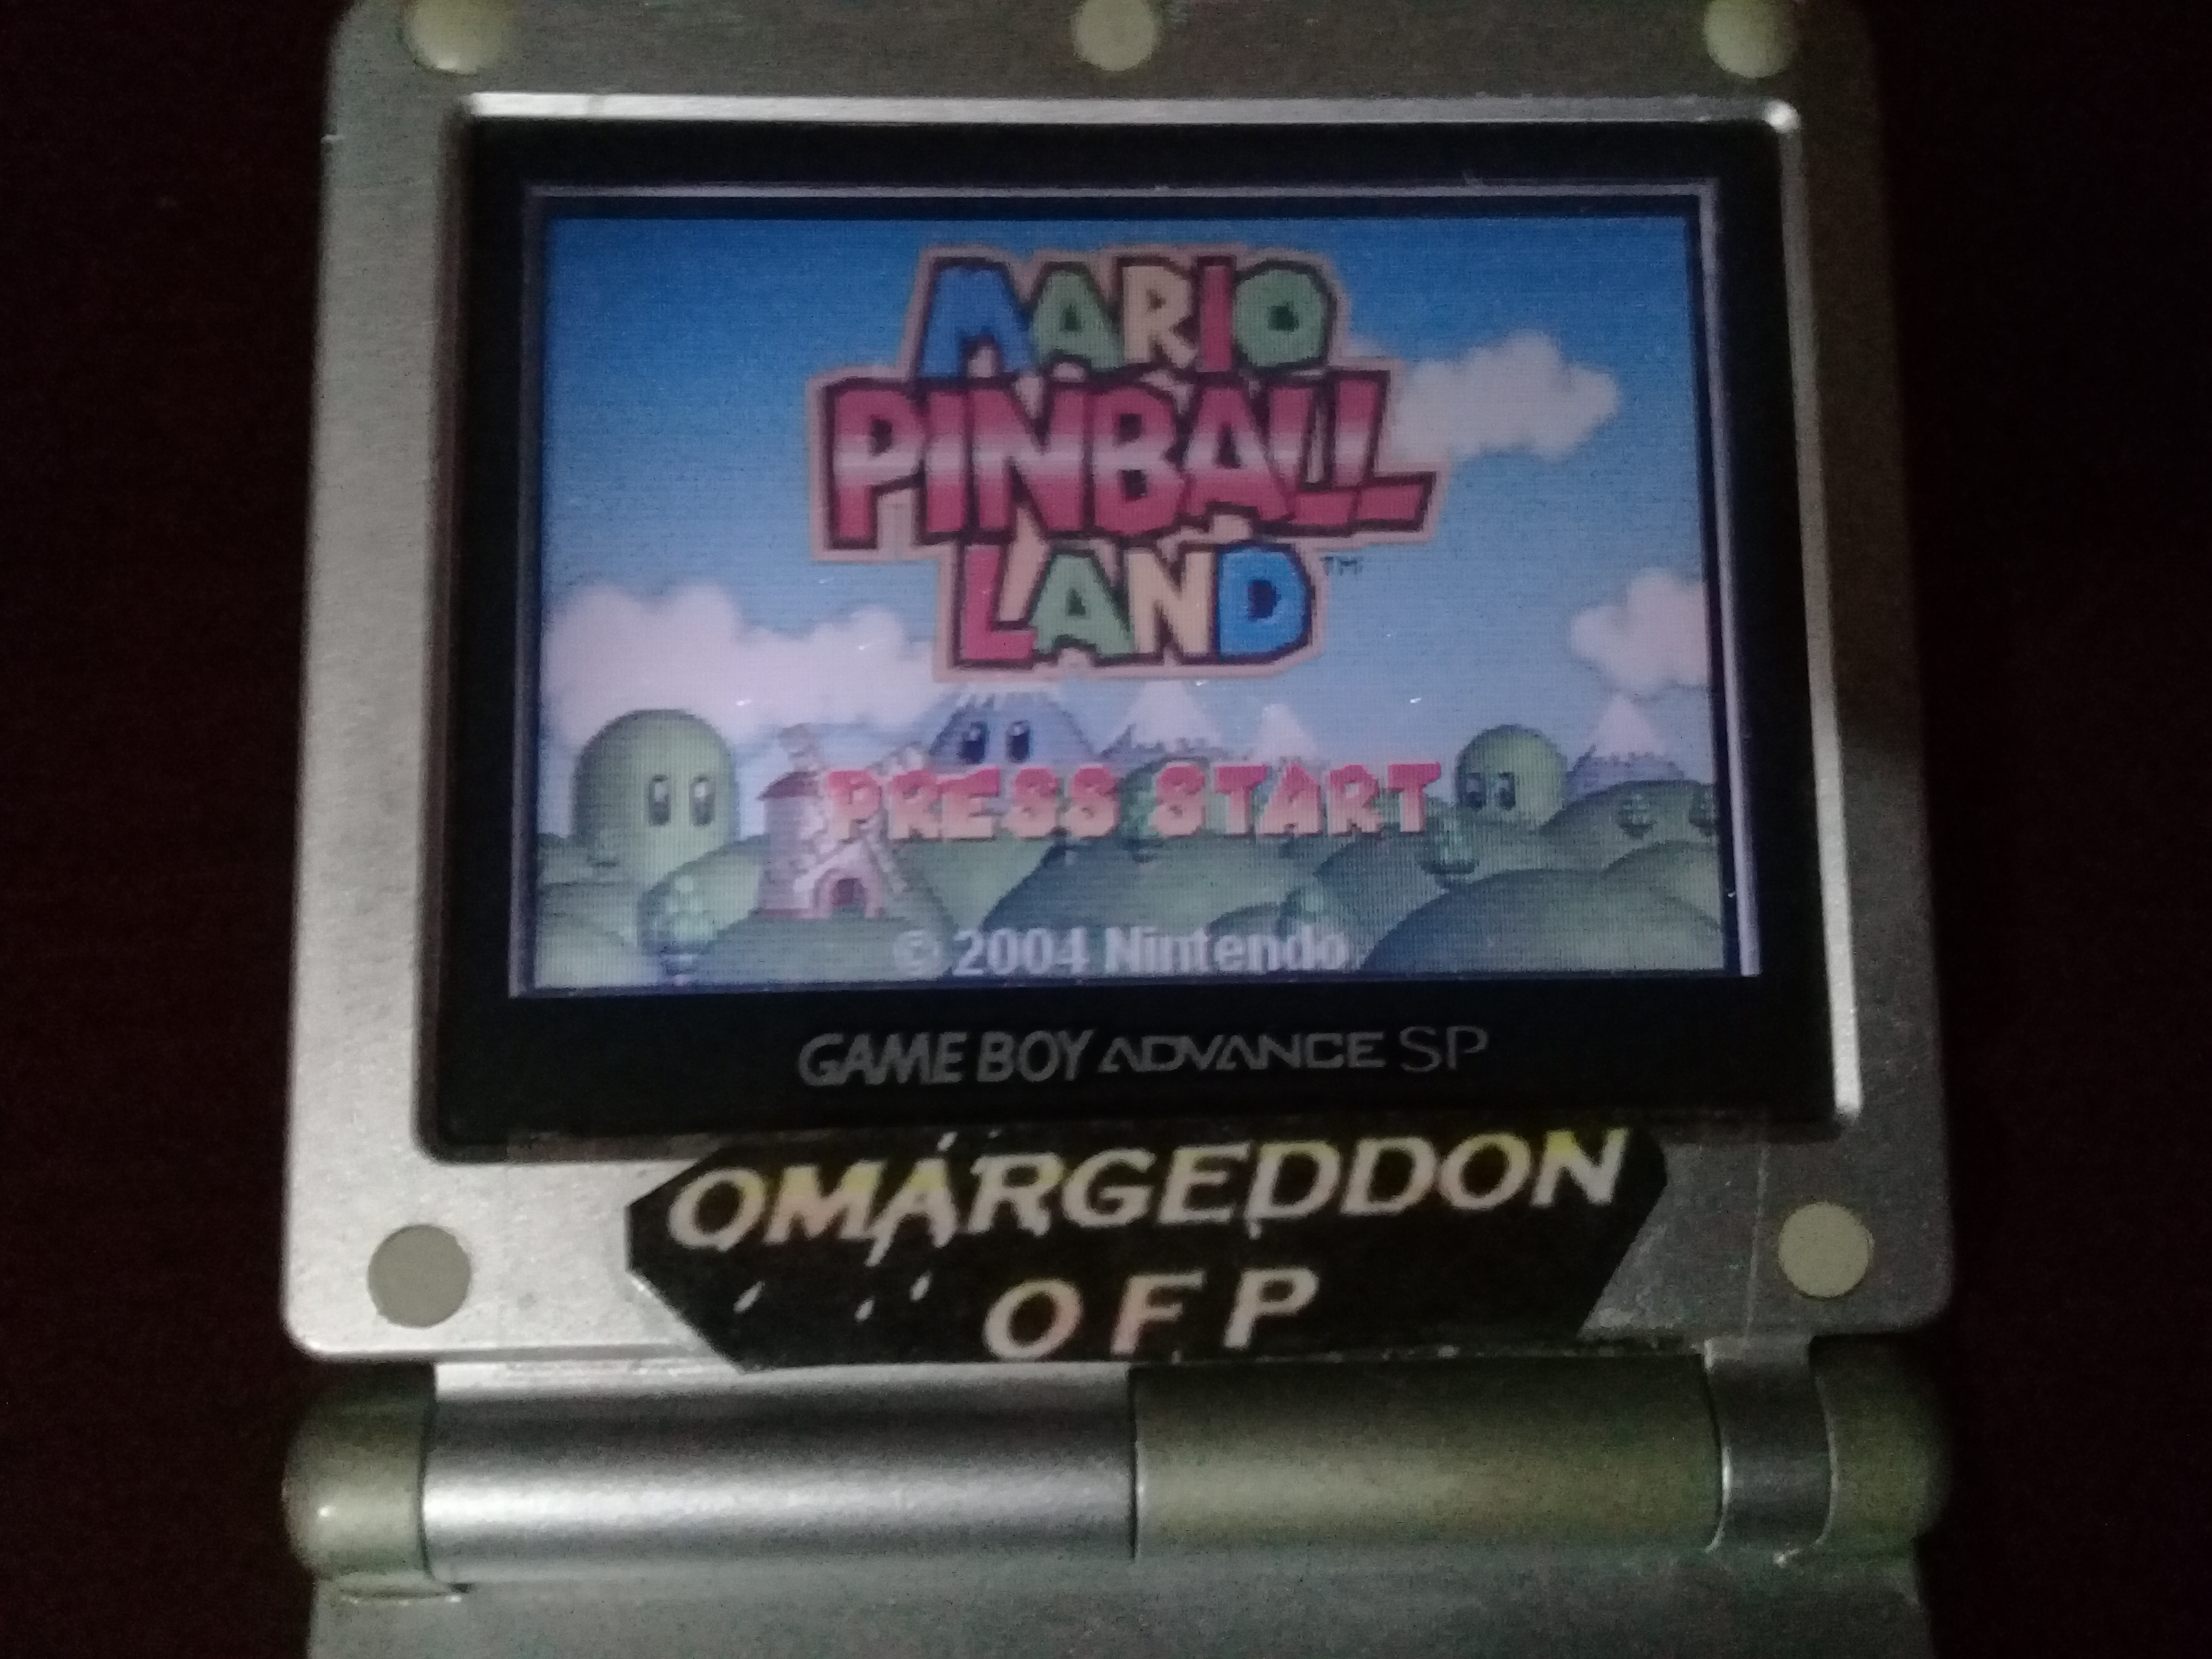 Mario Pinball Land 2,025,600 points